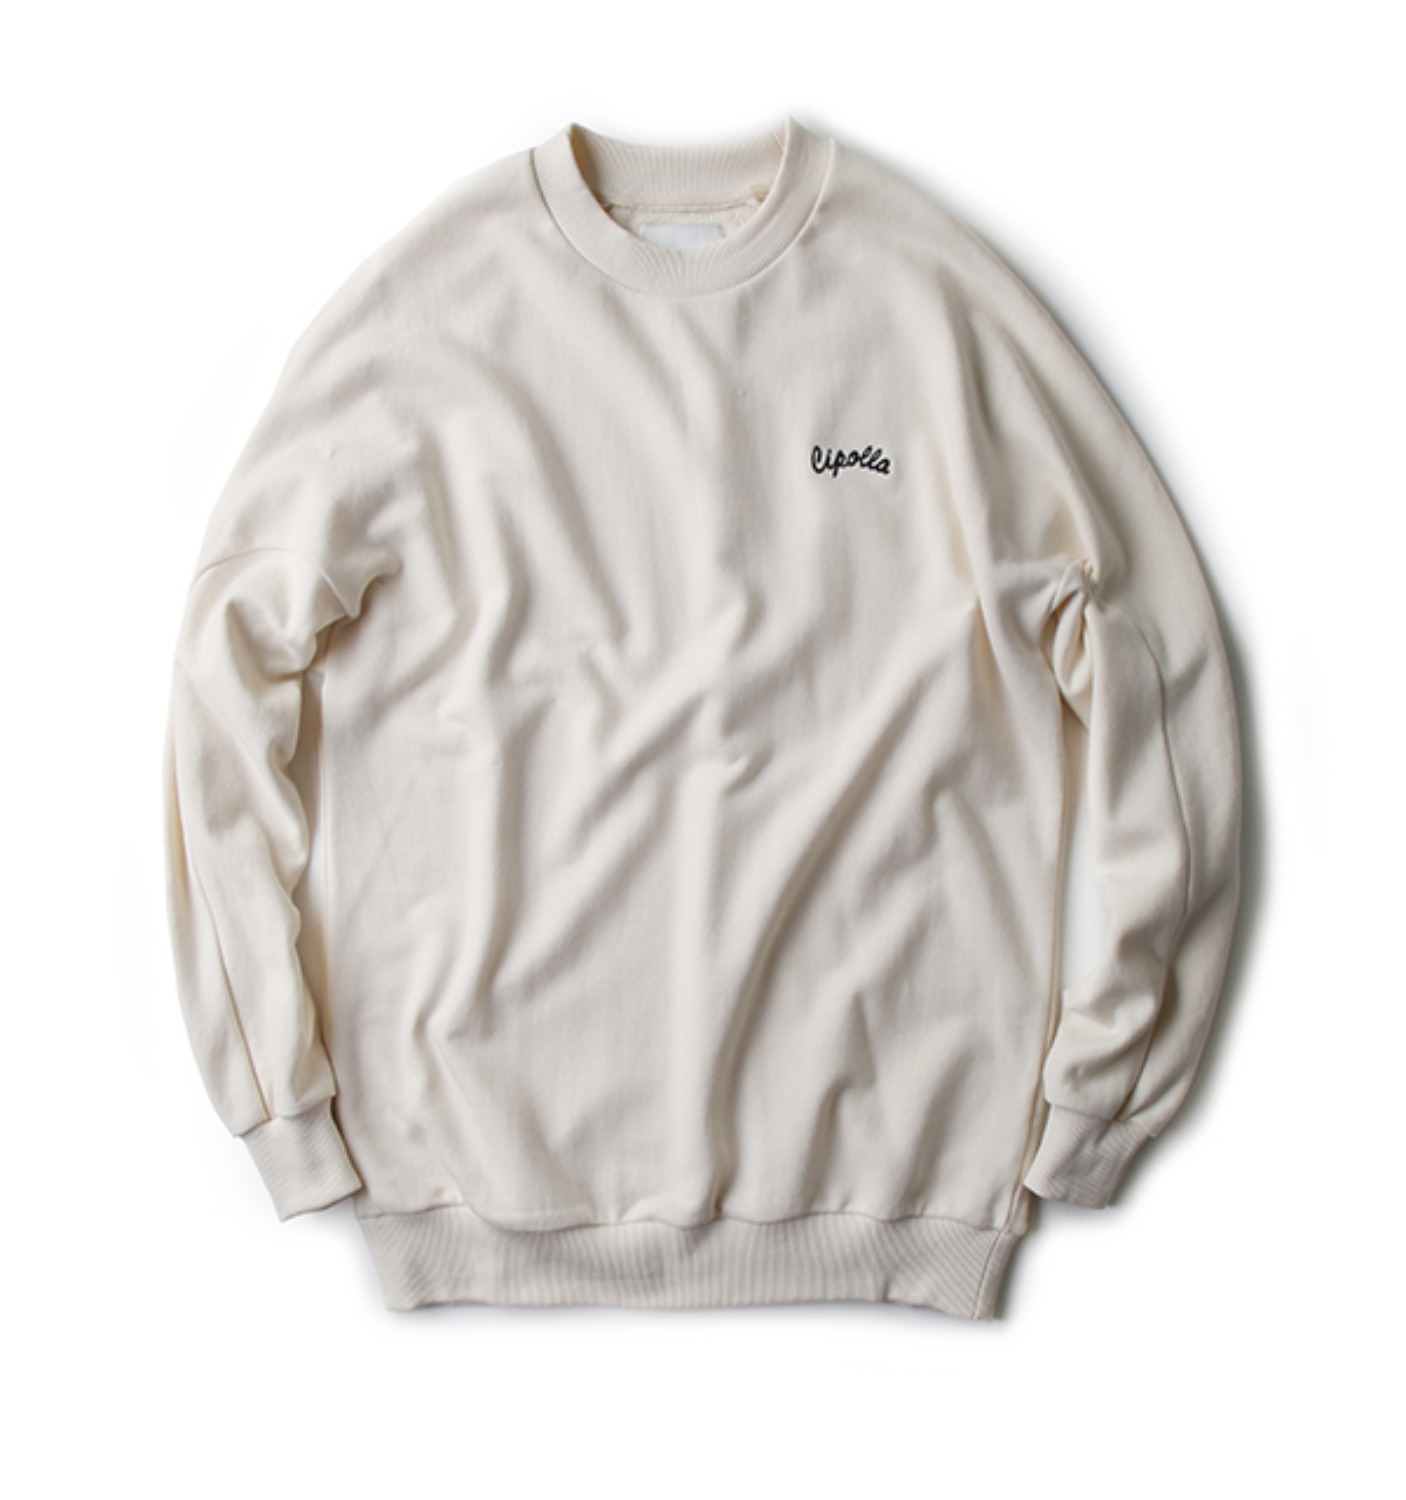 VEGETABLE SWEATSHIRT IVORY (NTS02001A)